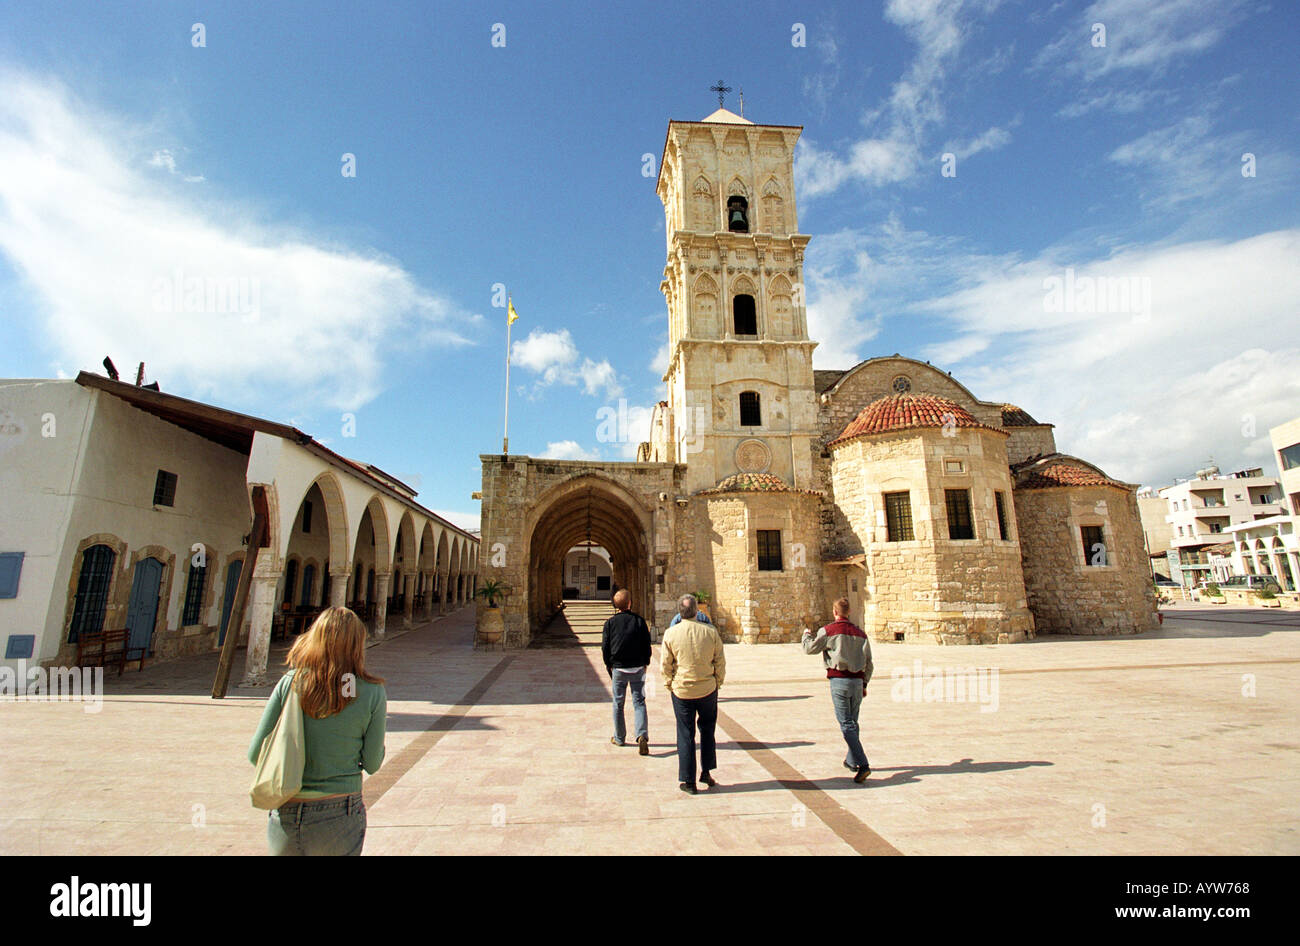 The Church of St Lazarus in Larnaca Cyprus Stock Photo